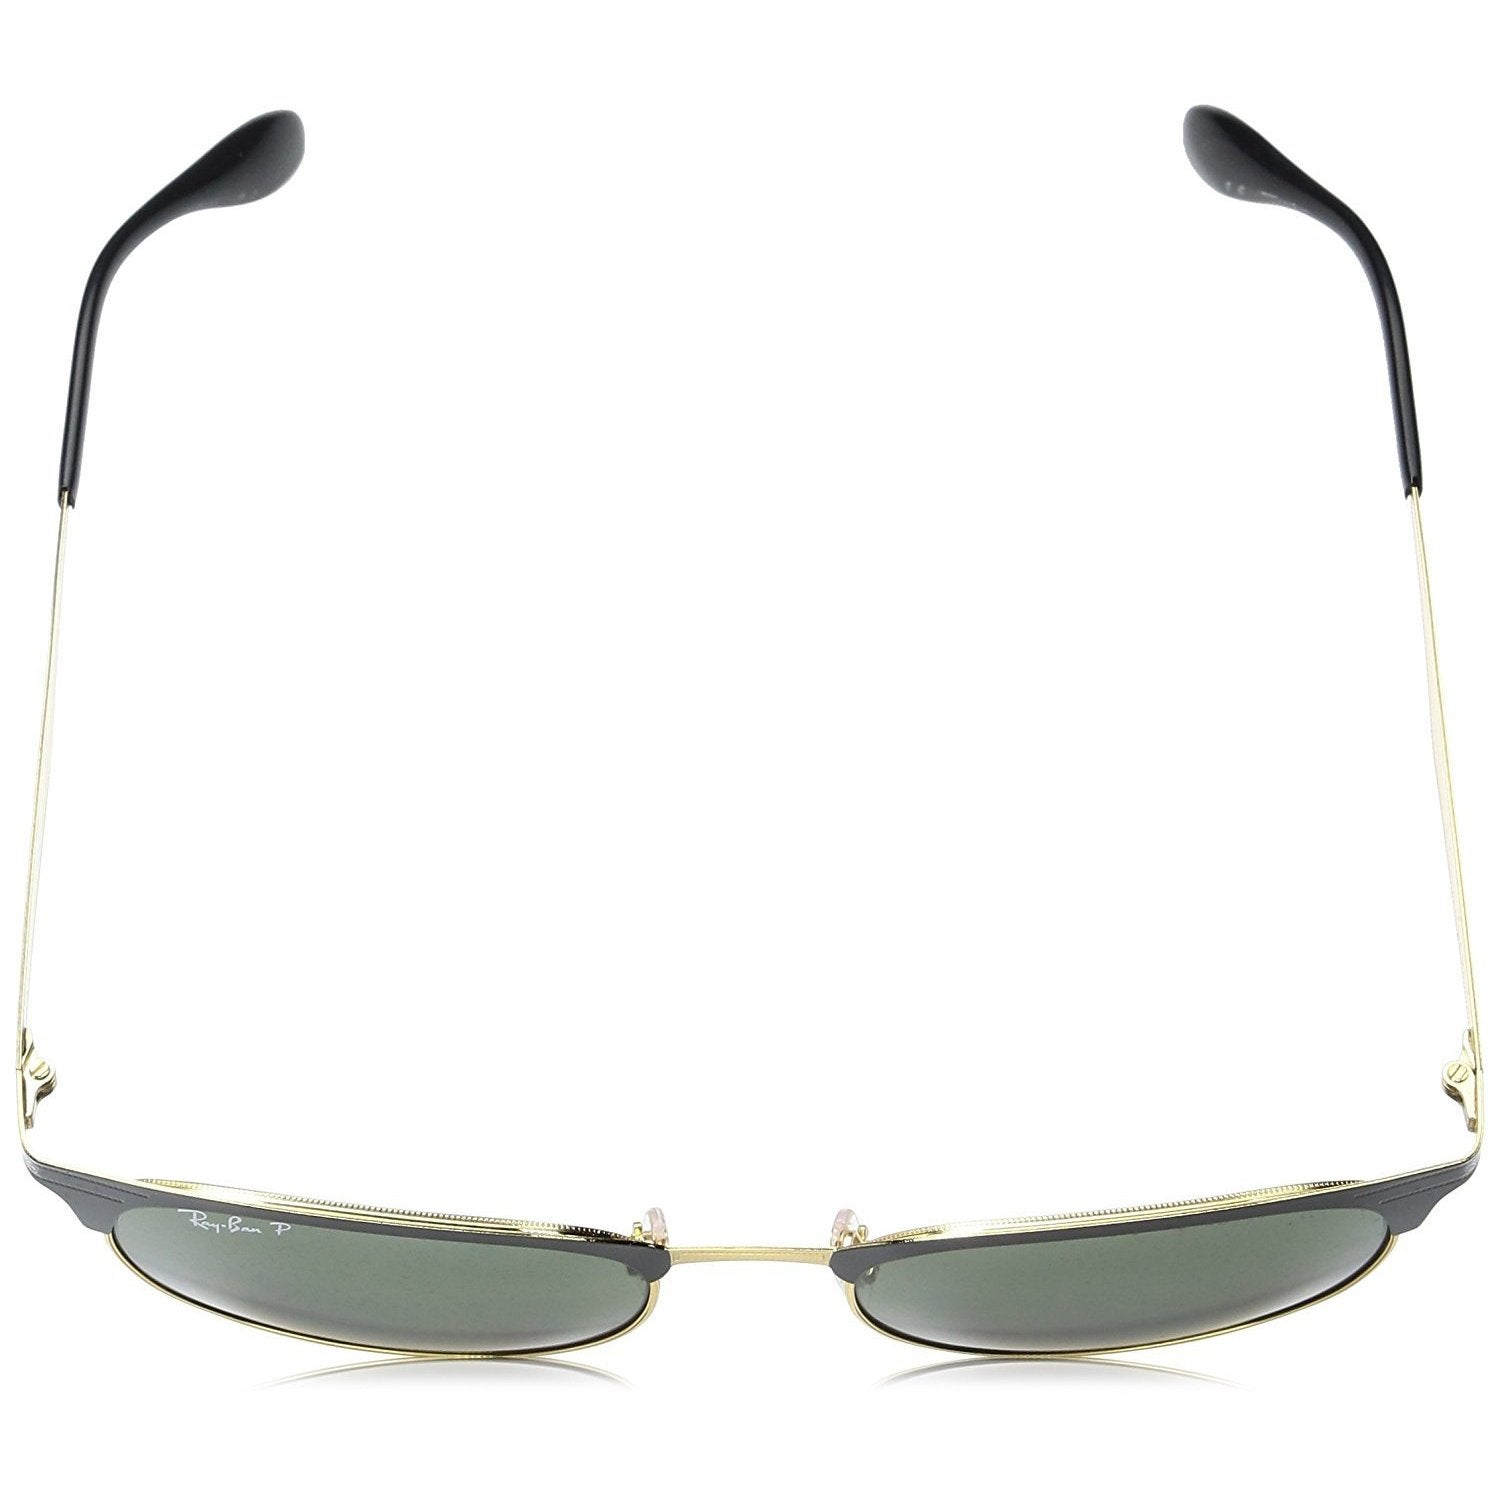 c900b45516 Shop Ray-Ban Men s RB3538 187 9A Black Frame Polarized Green Classic 53 mm  Lens Sunglasses - Free Shipping Today - Overstock - 16740893